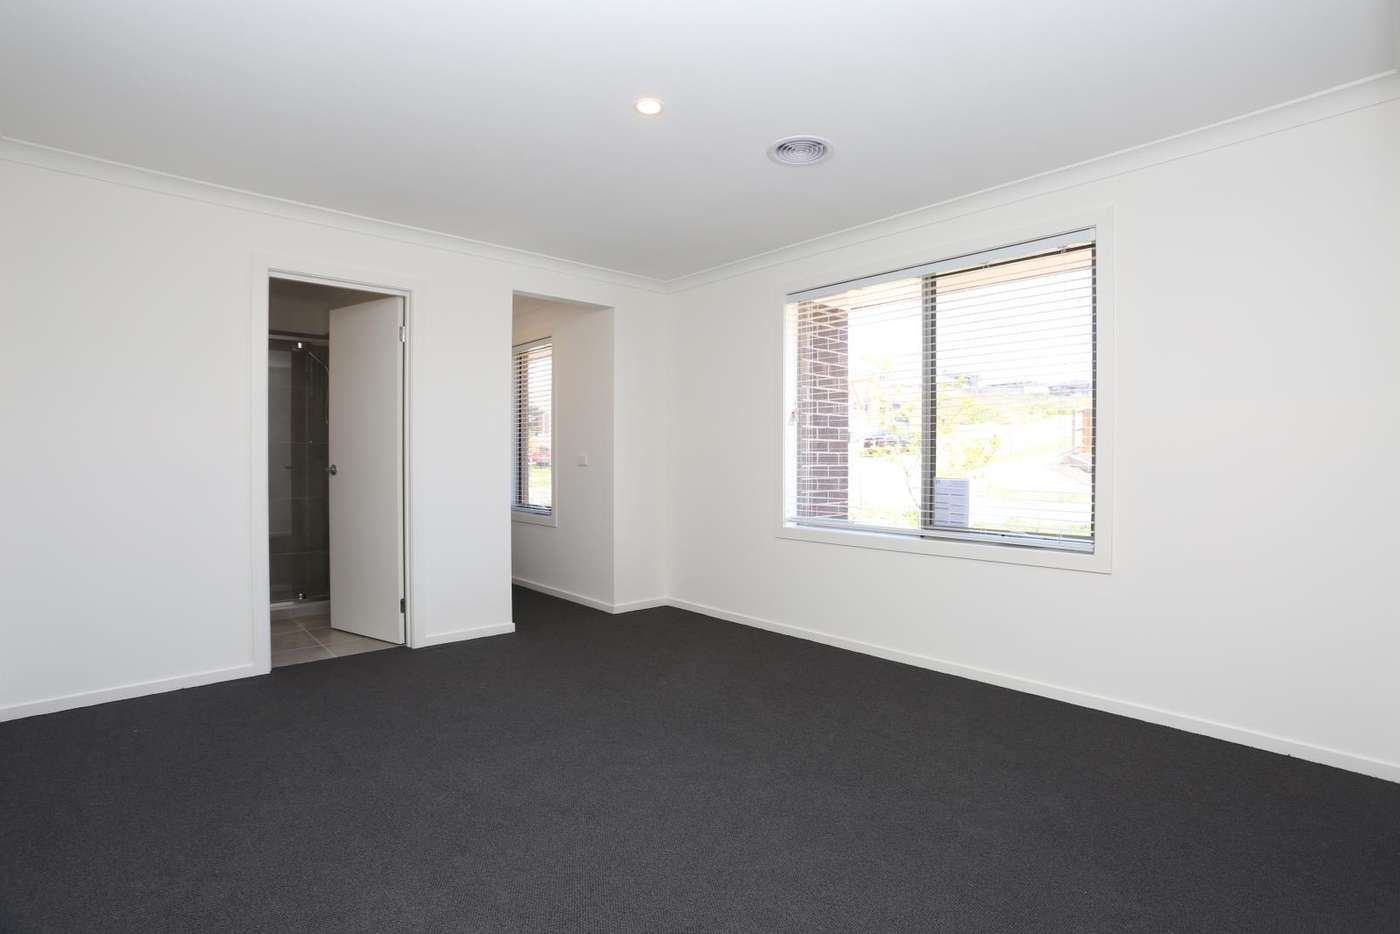 Fifth view of Homely house listing, 17 Oliver Street, Doreen VIC 3754